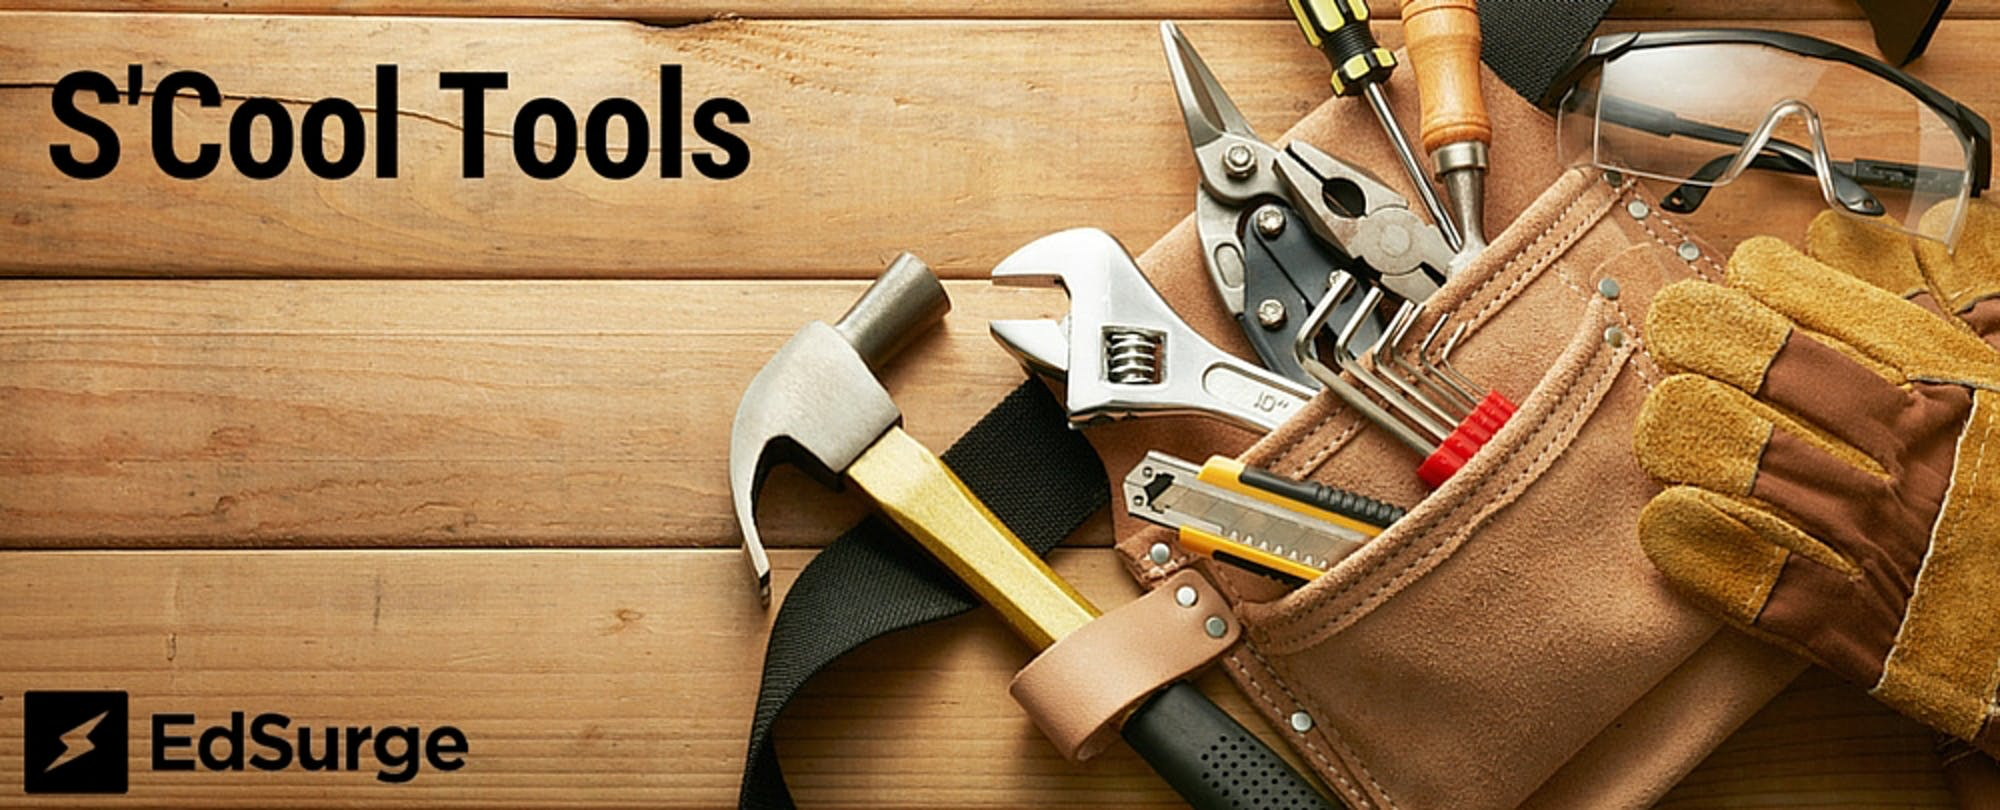 S'Cool Tools Reviewed by Educators: Google Classroom